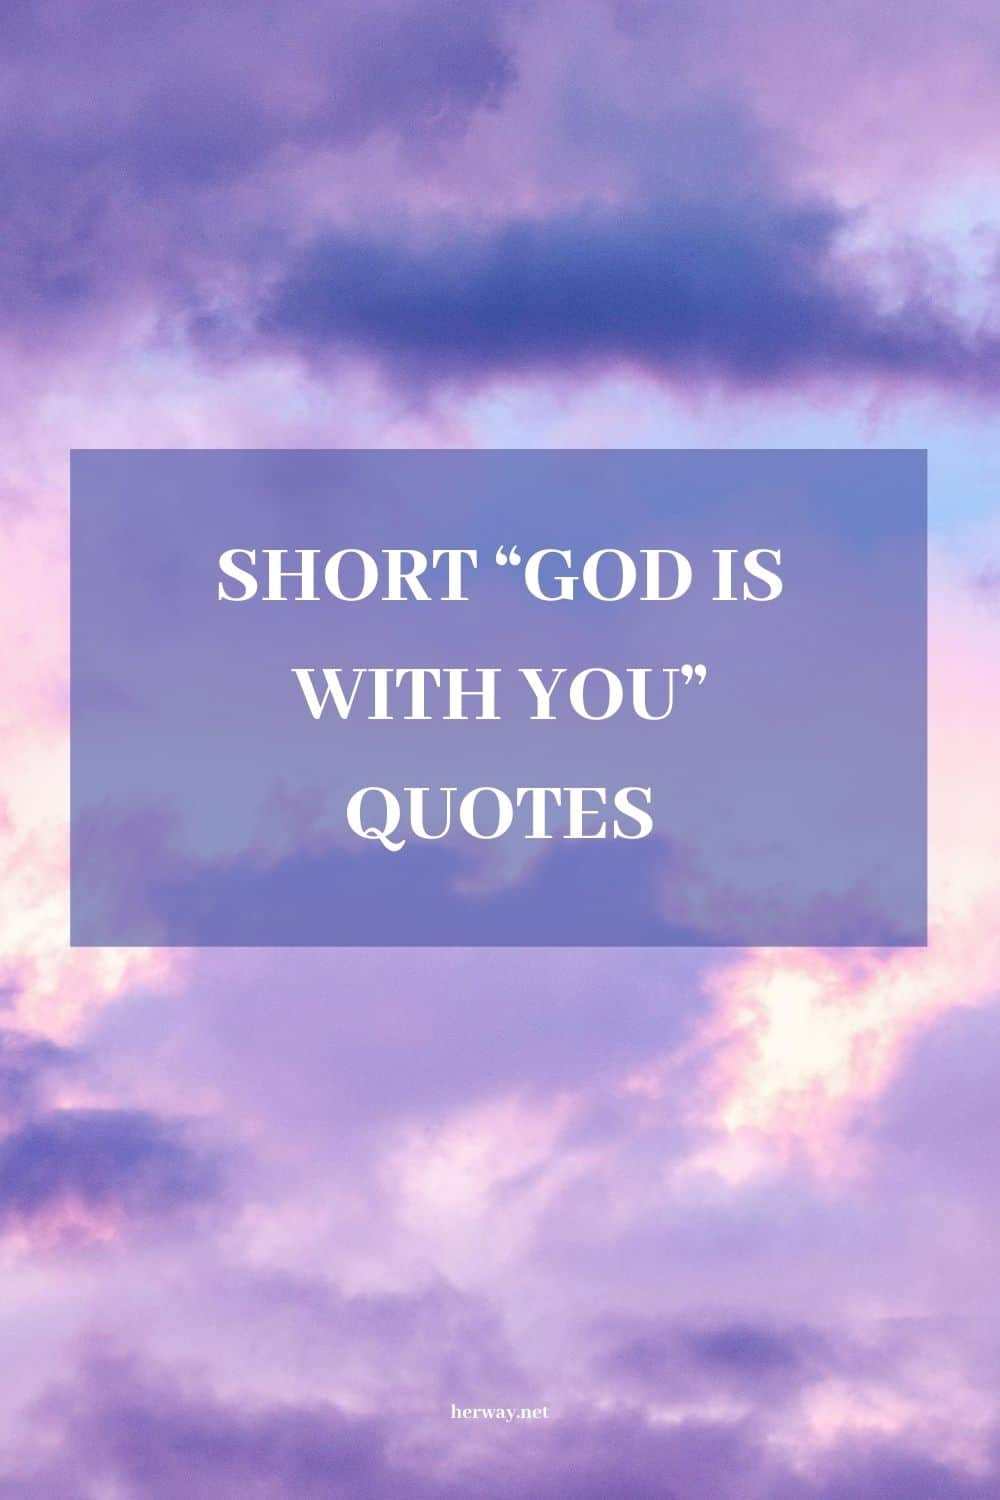 God Quotes Uplifting Sayings To Inspire And Empower You